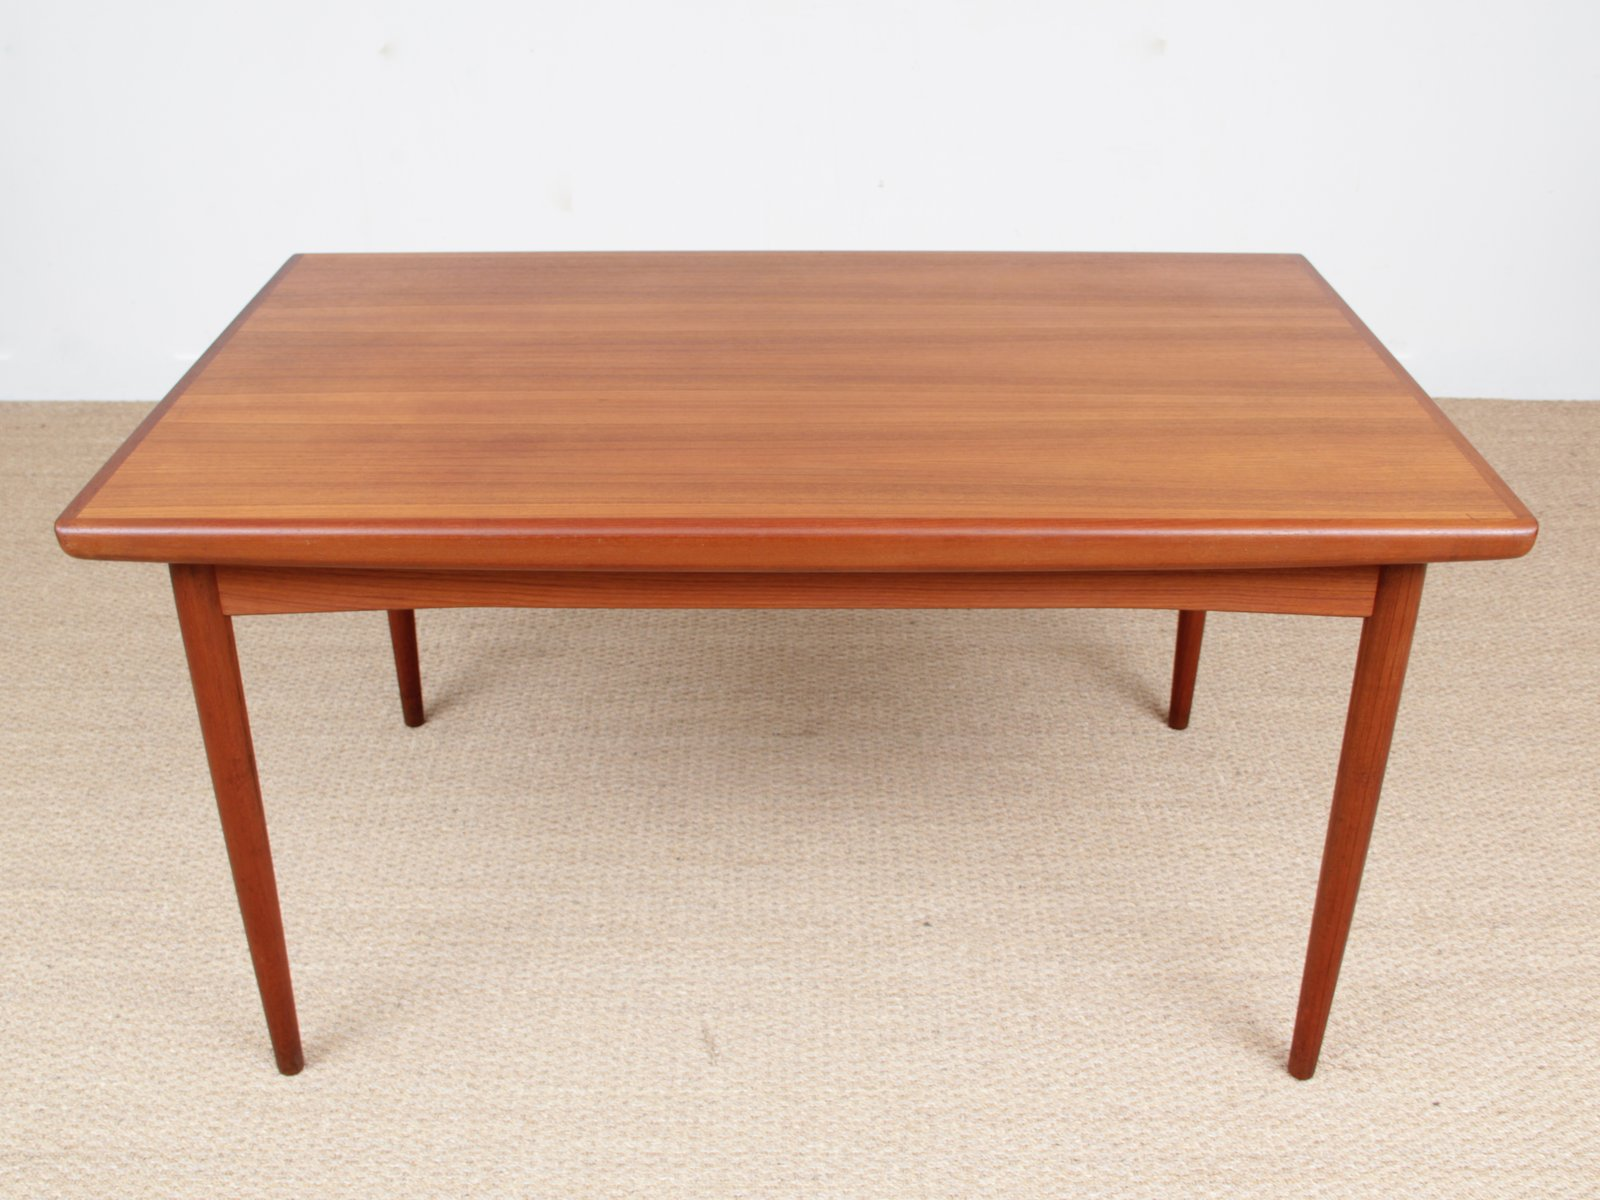 Scandinavian teak dining table from dyrlund 1950s for sale at pamono - Dining table scandinavian ...